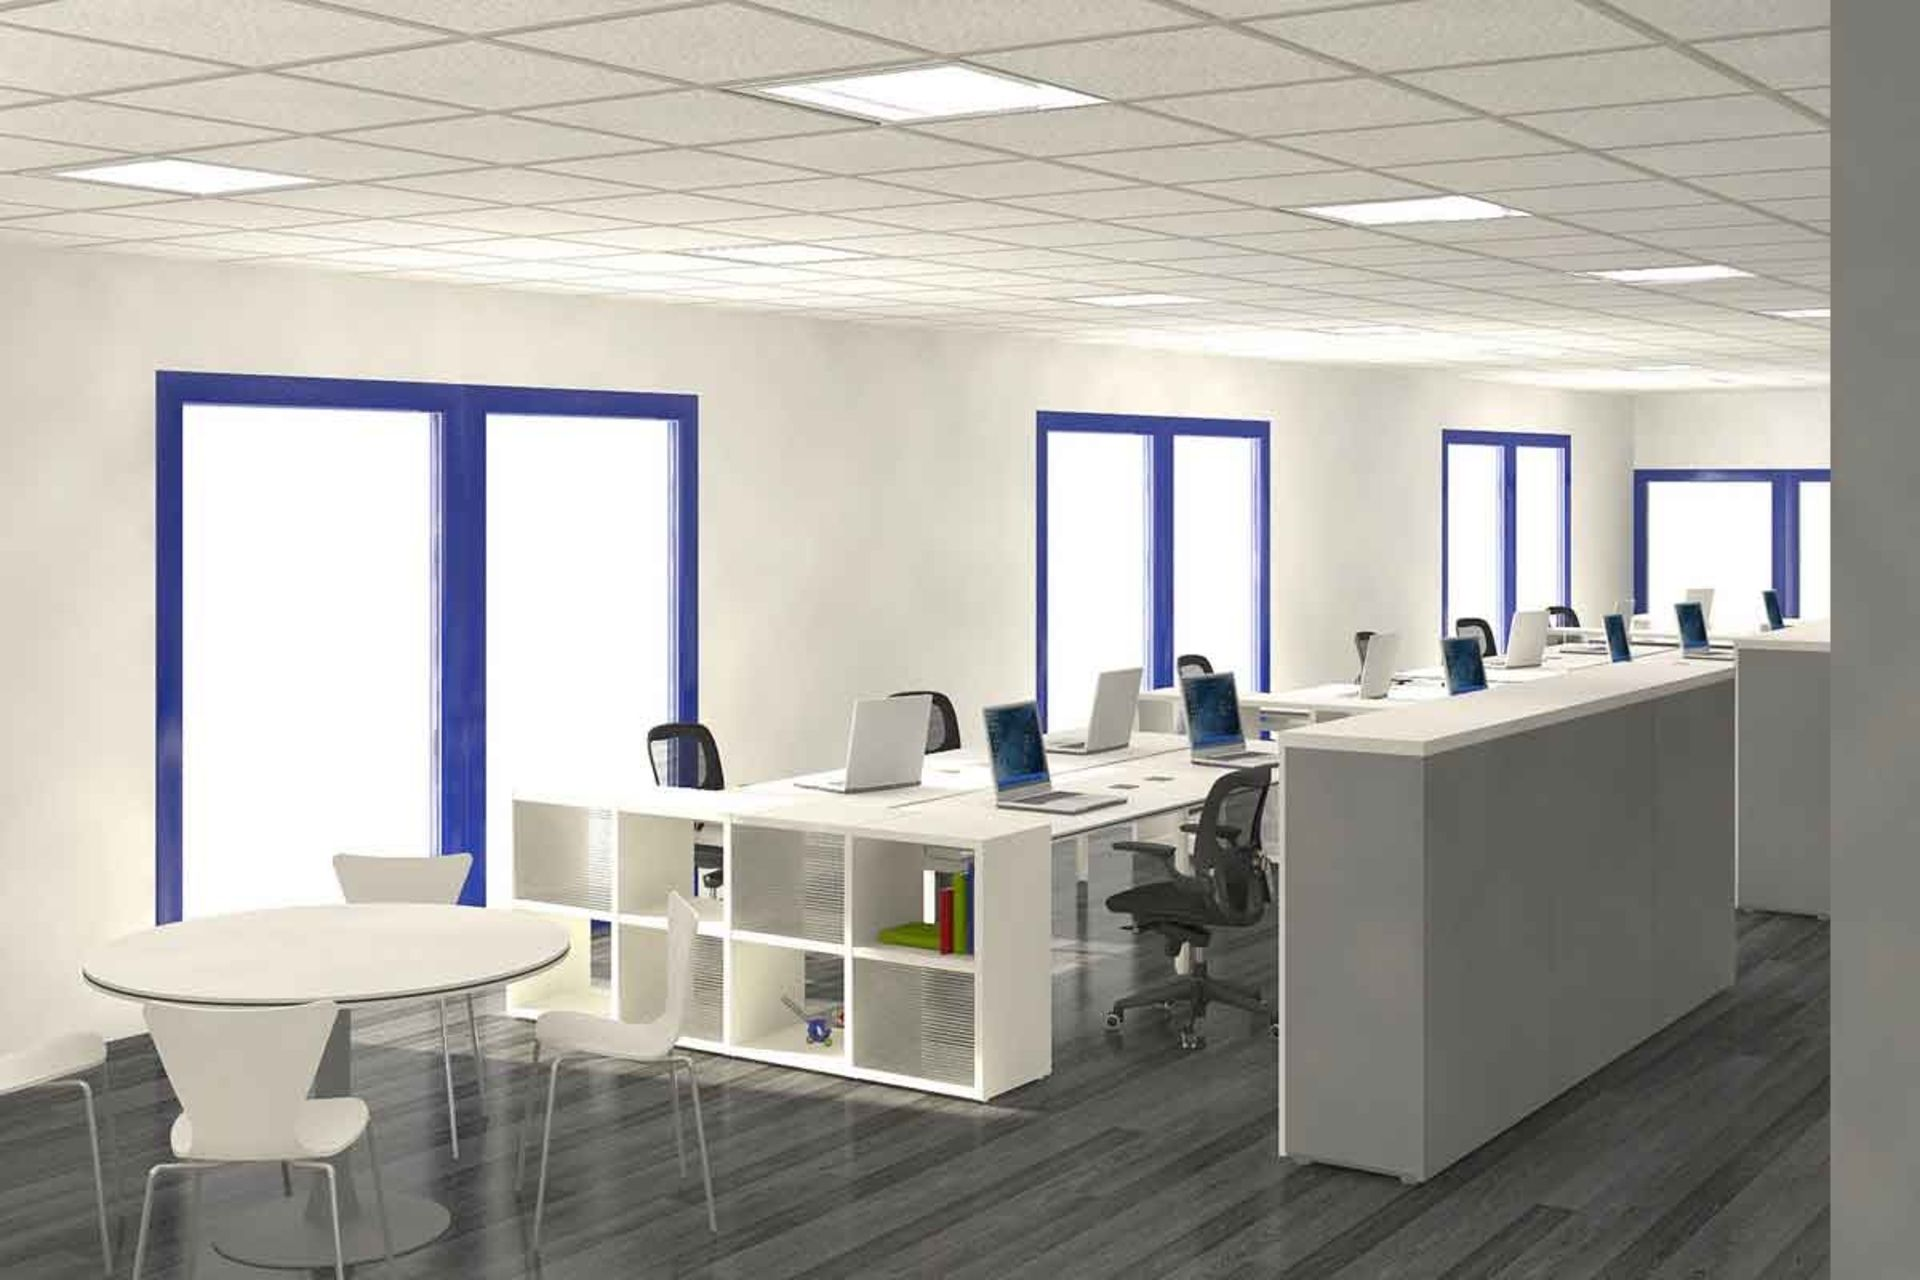 Corporate office decor using ikea furniture google for Office space planning ideas